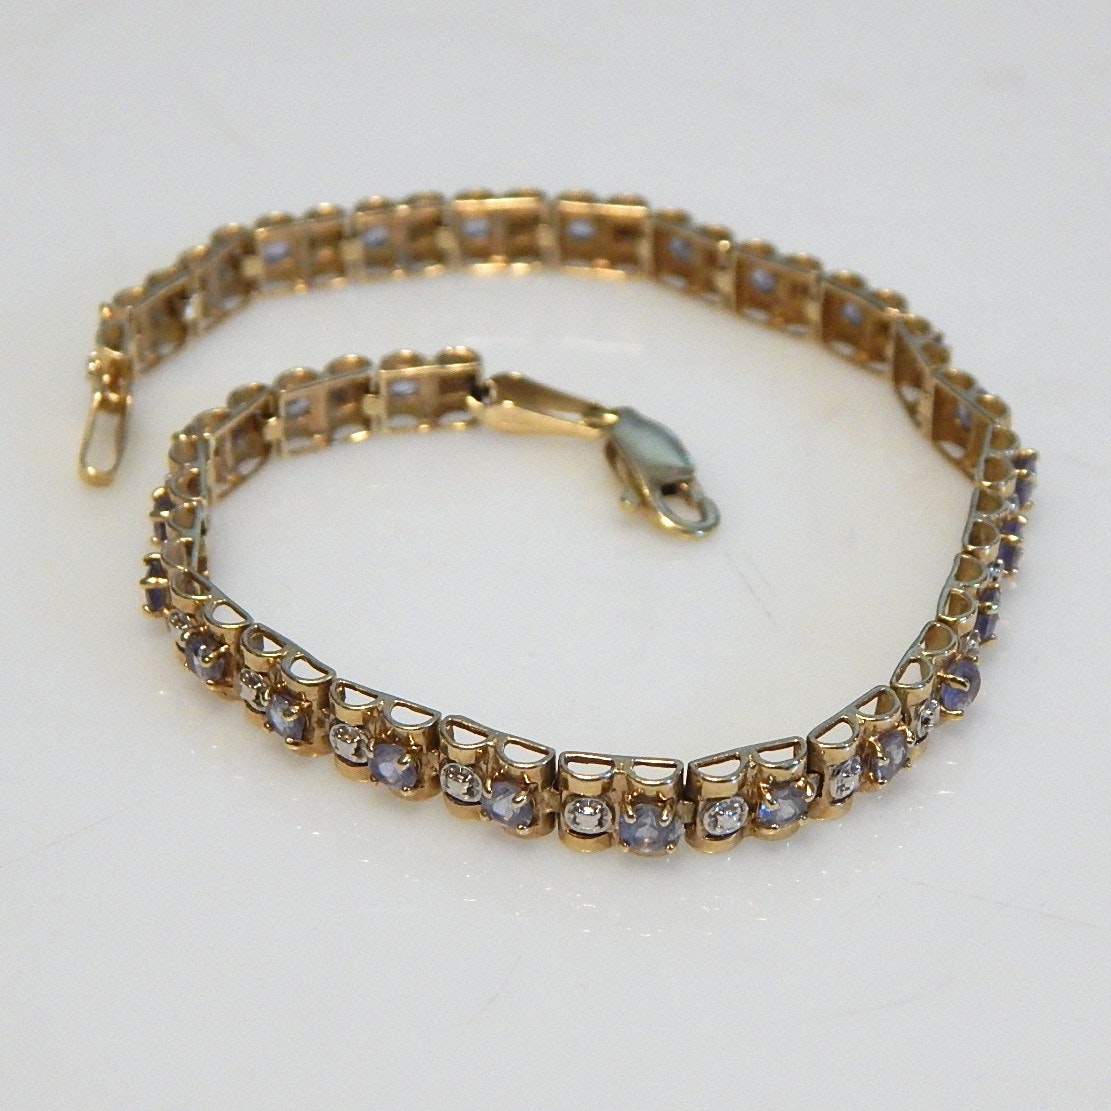 14K Yellow Gold and Tanzanite Tennis Bracelet